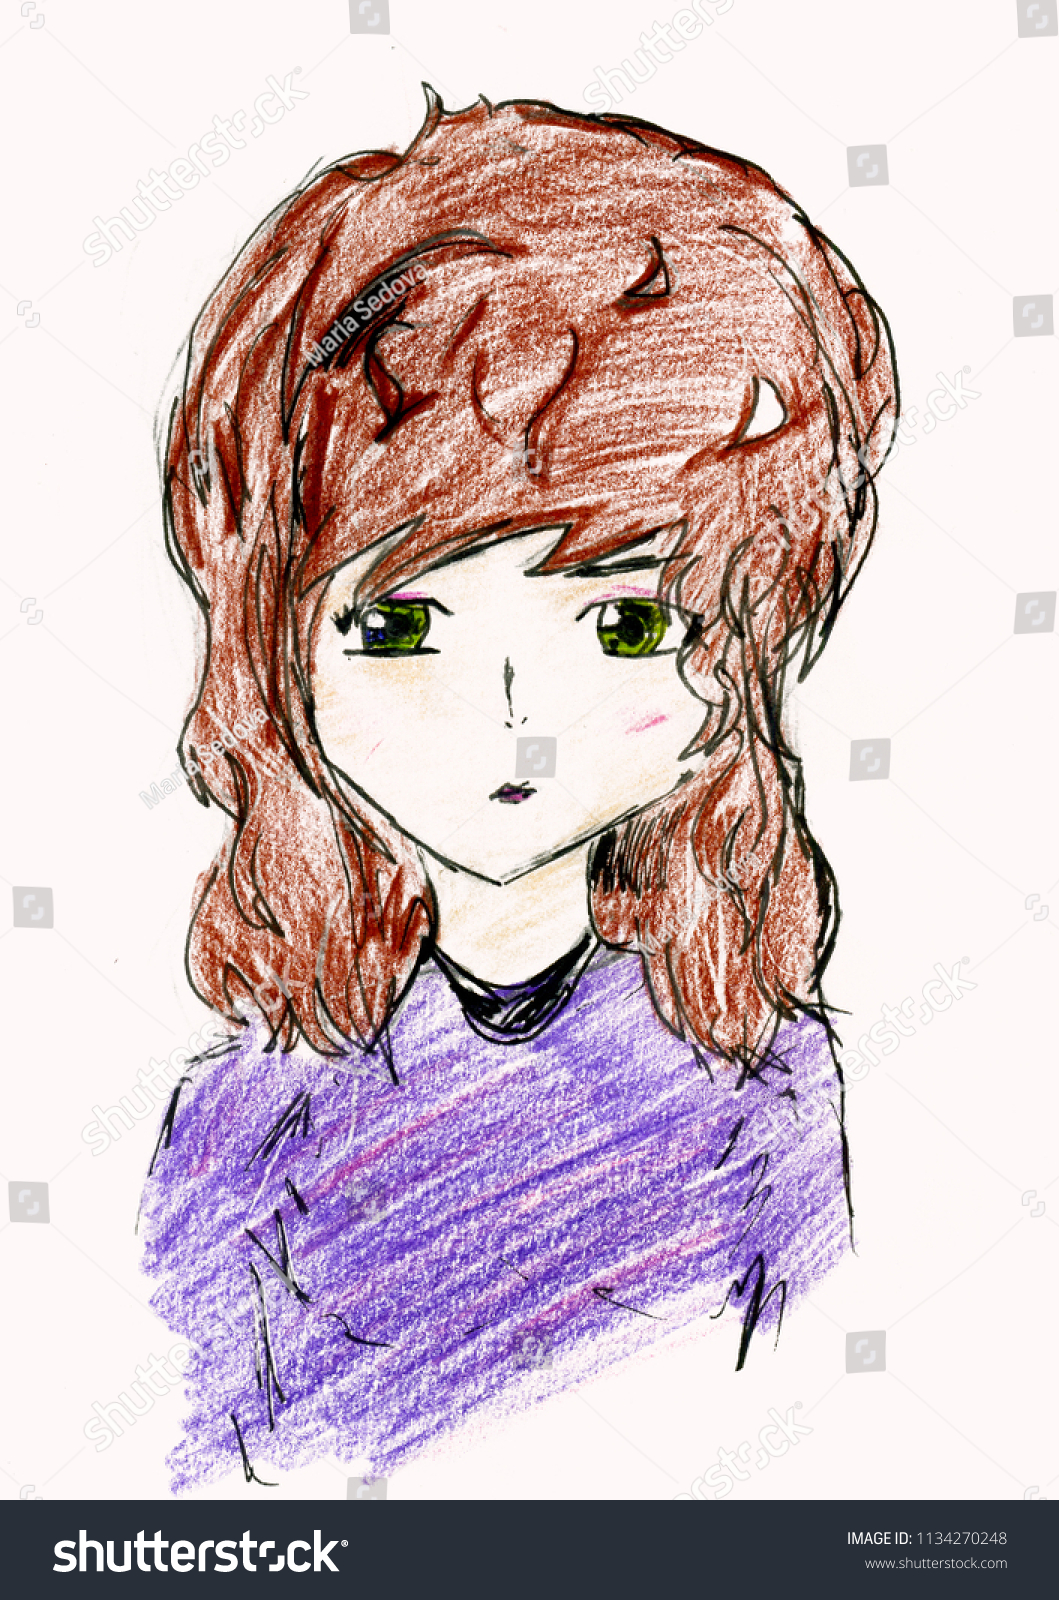 Green eyed brown haired anime style girl portrait pencil drawing